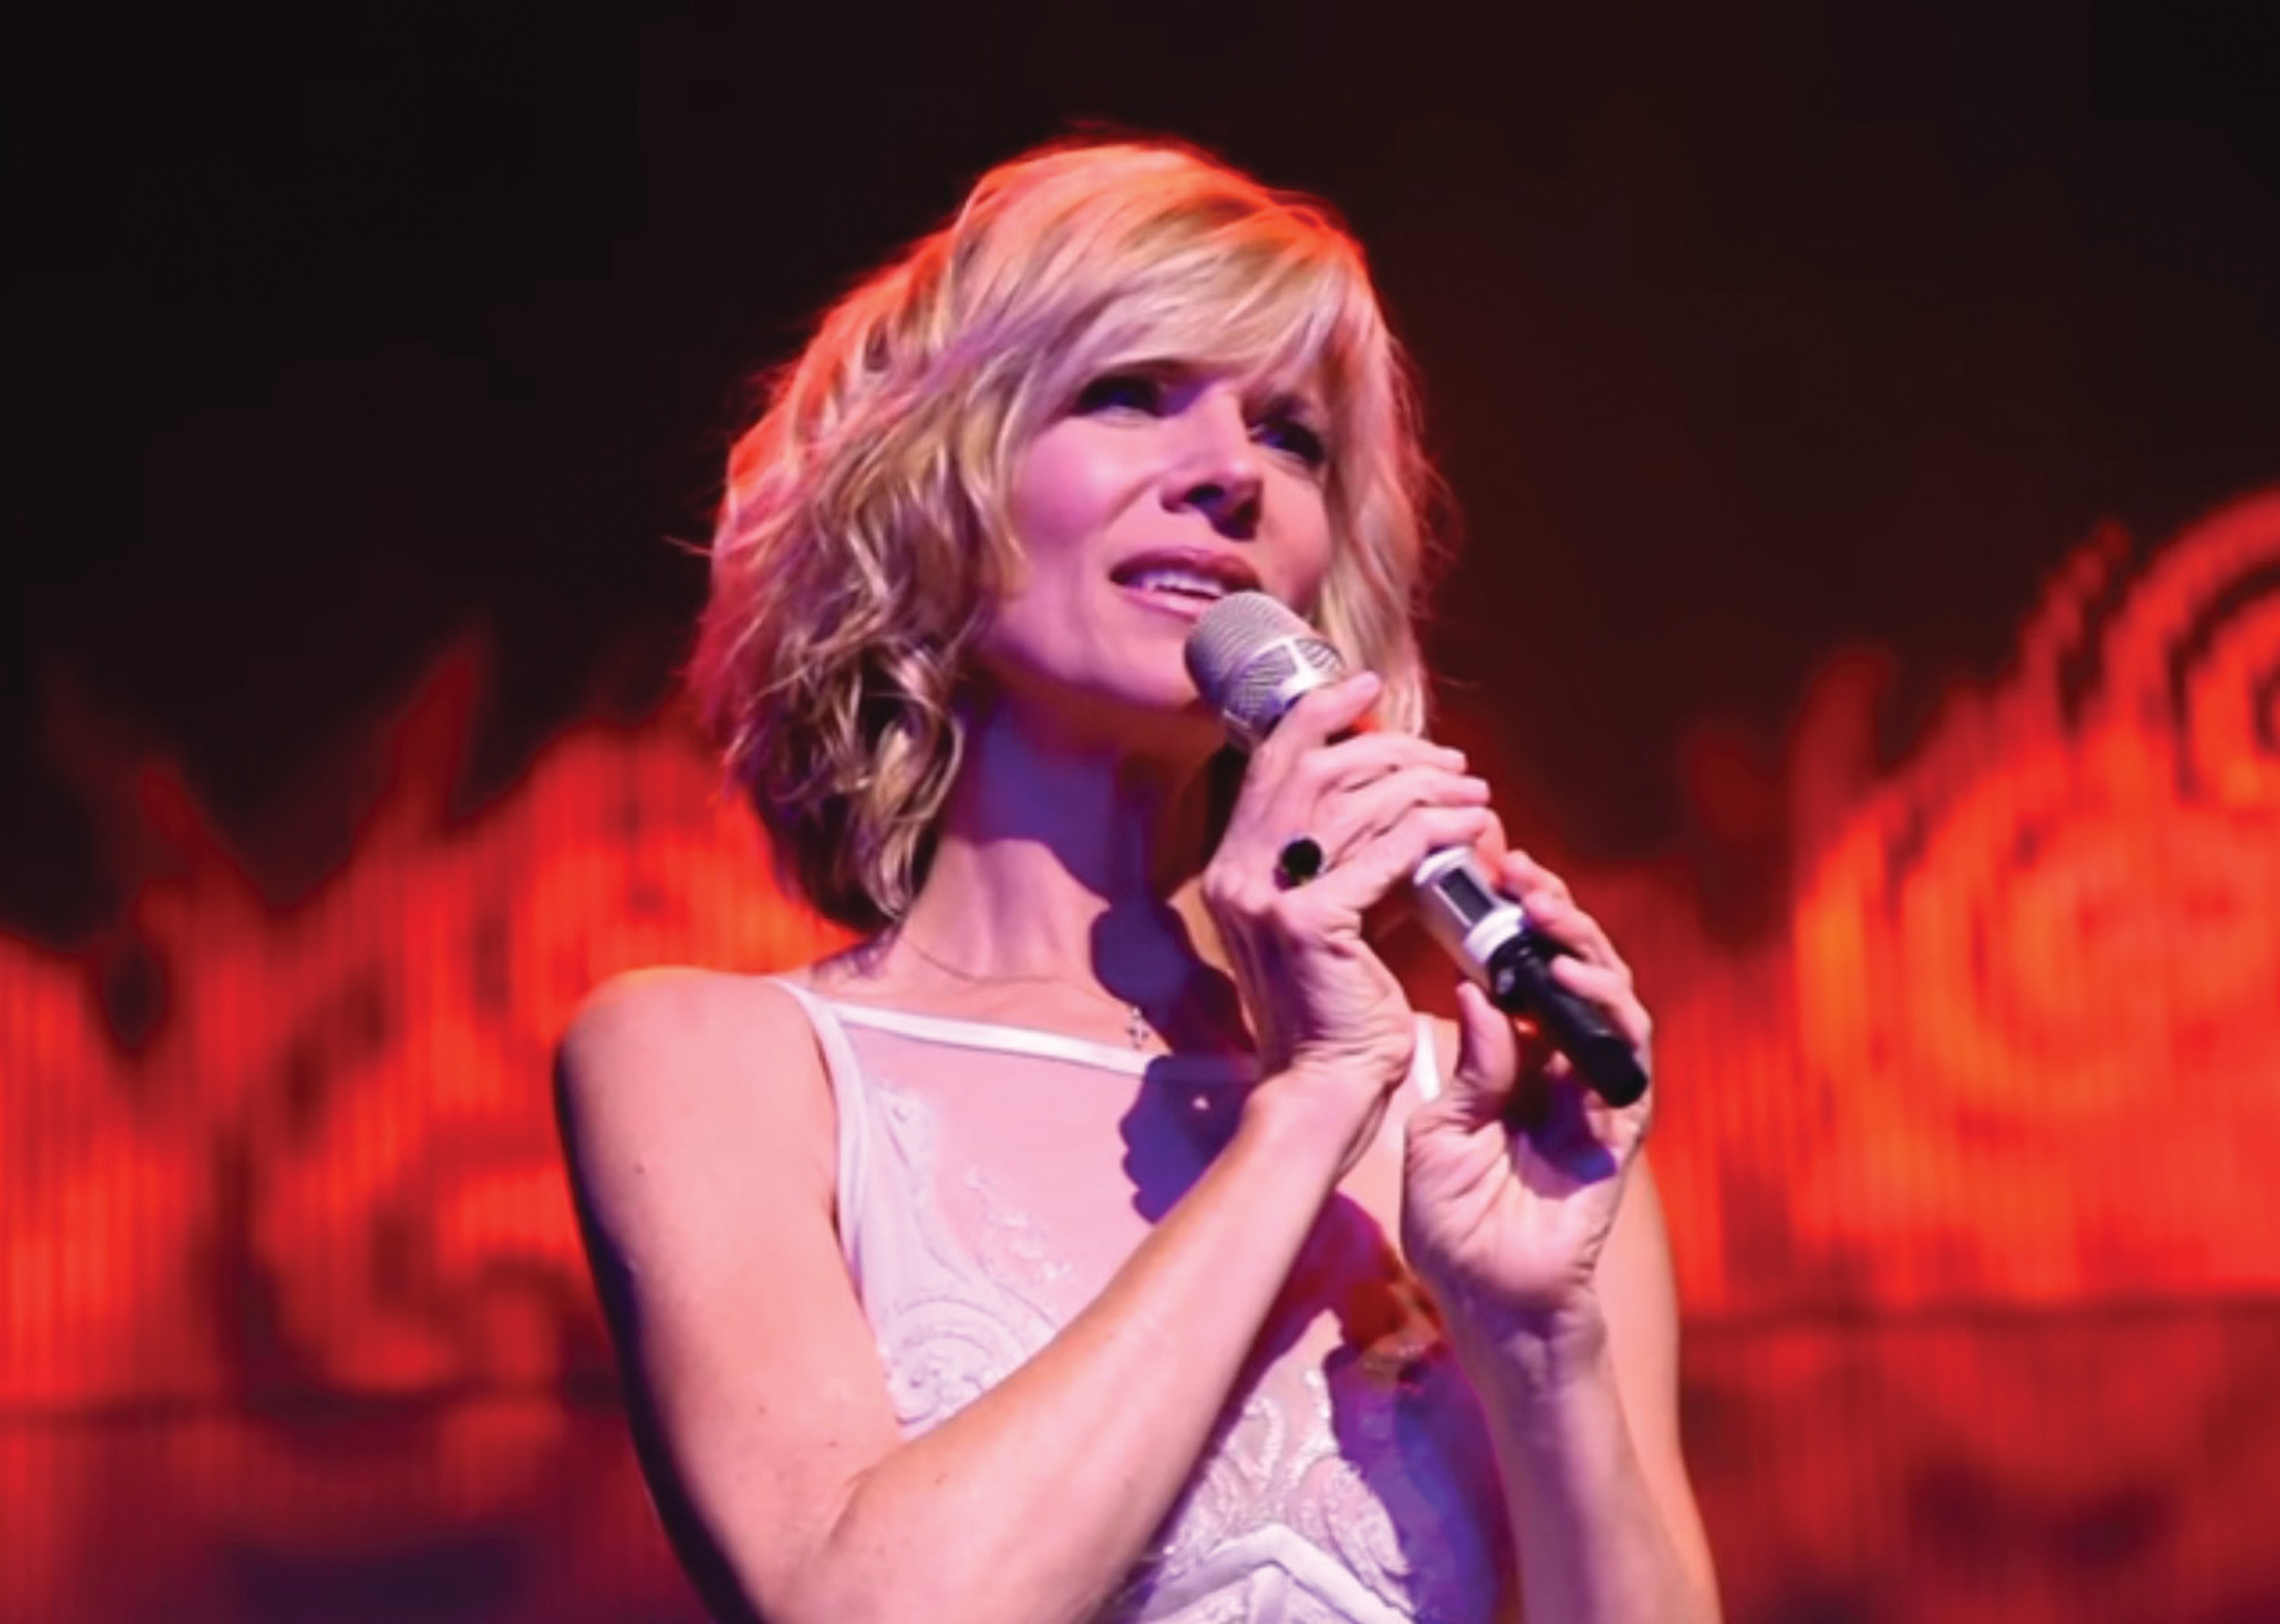 Debby Boone is shown at a recent concert. She plans to tour and record CDs, a format not available 40 years ago.